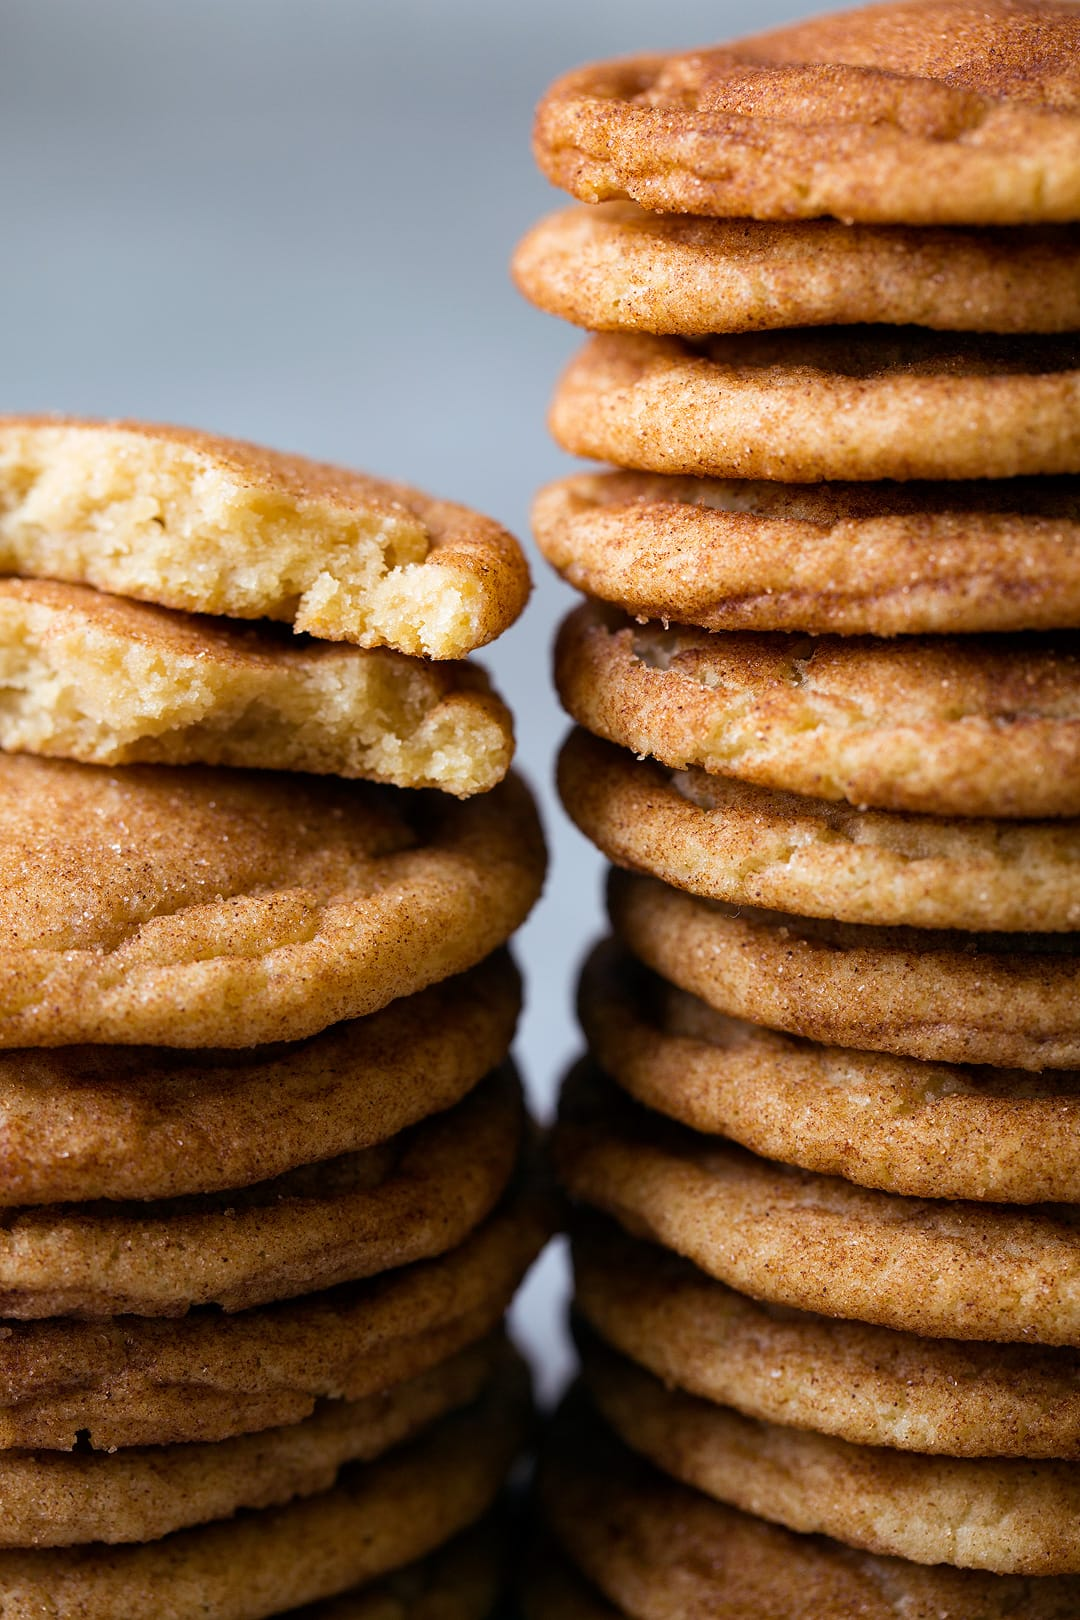 Close up image of two stacks of snickerdoodles.